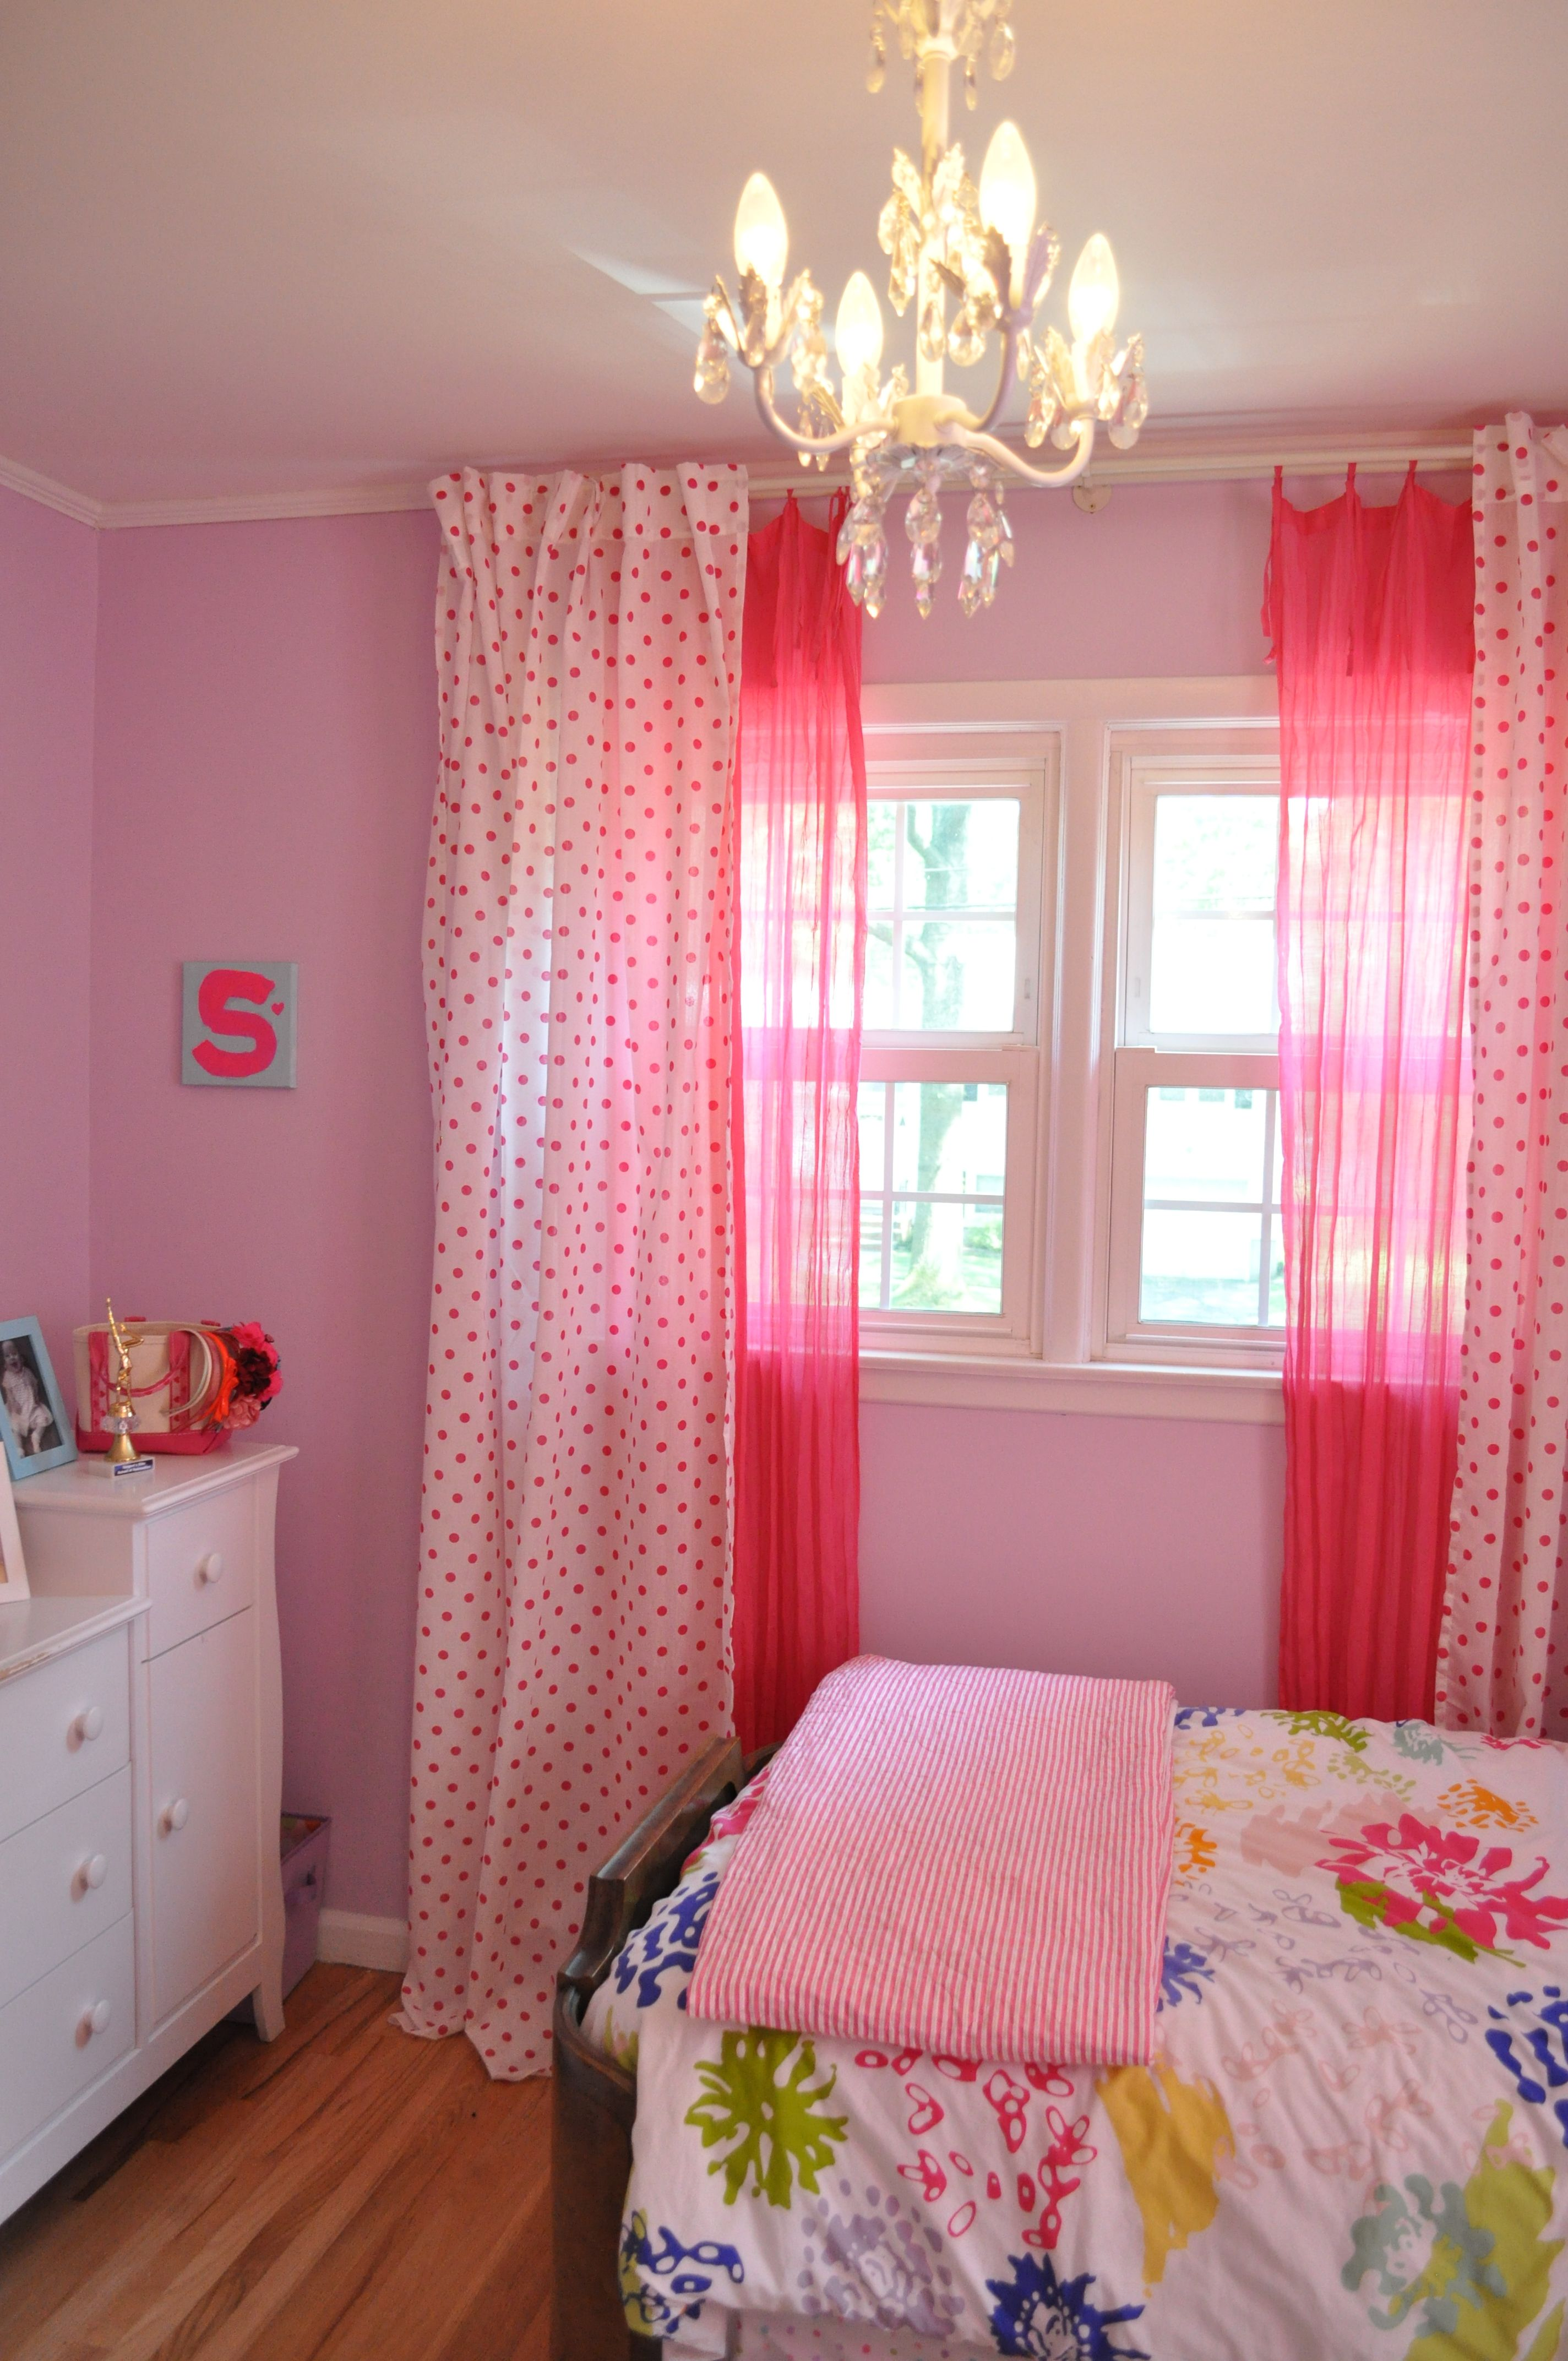 Master bedroom curtains  DIY Lengthening our Master Bedroom Curtains  Curtains  Pinterest